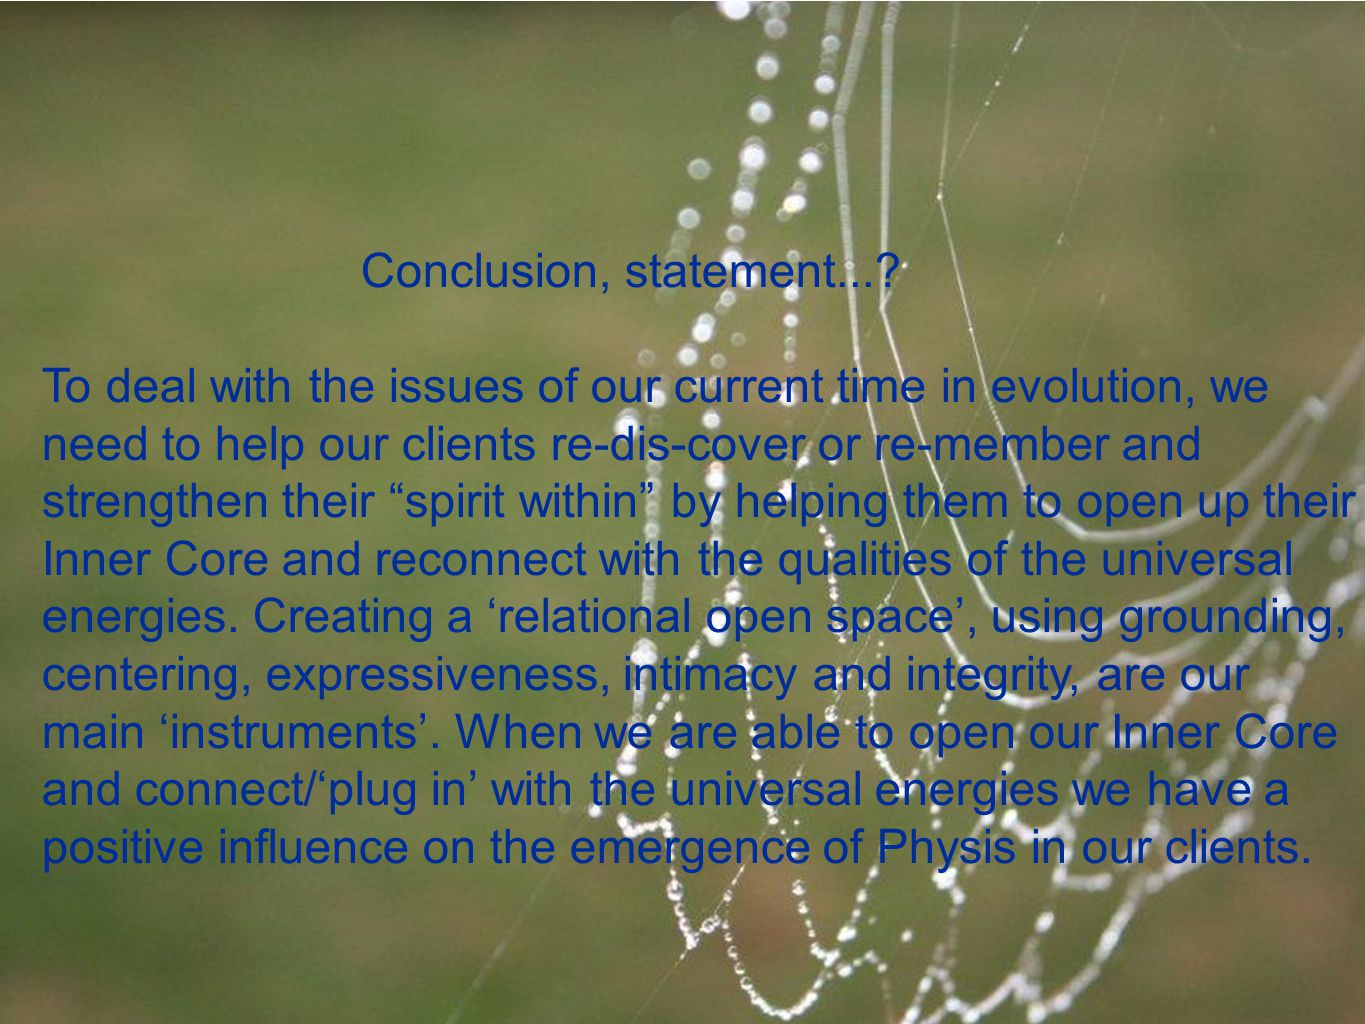 Conclusion, statement...? To deal with the issues of our current time in evolution, we need to help our clients re-dis-cover or re-member and strength